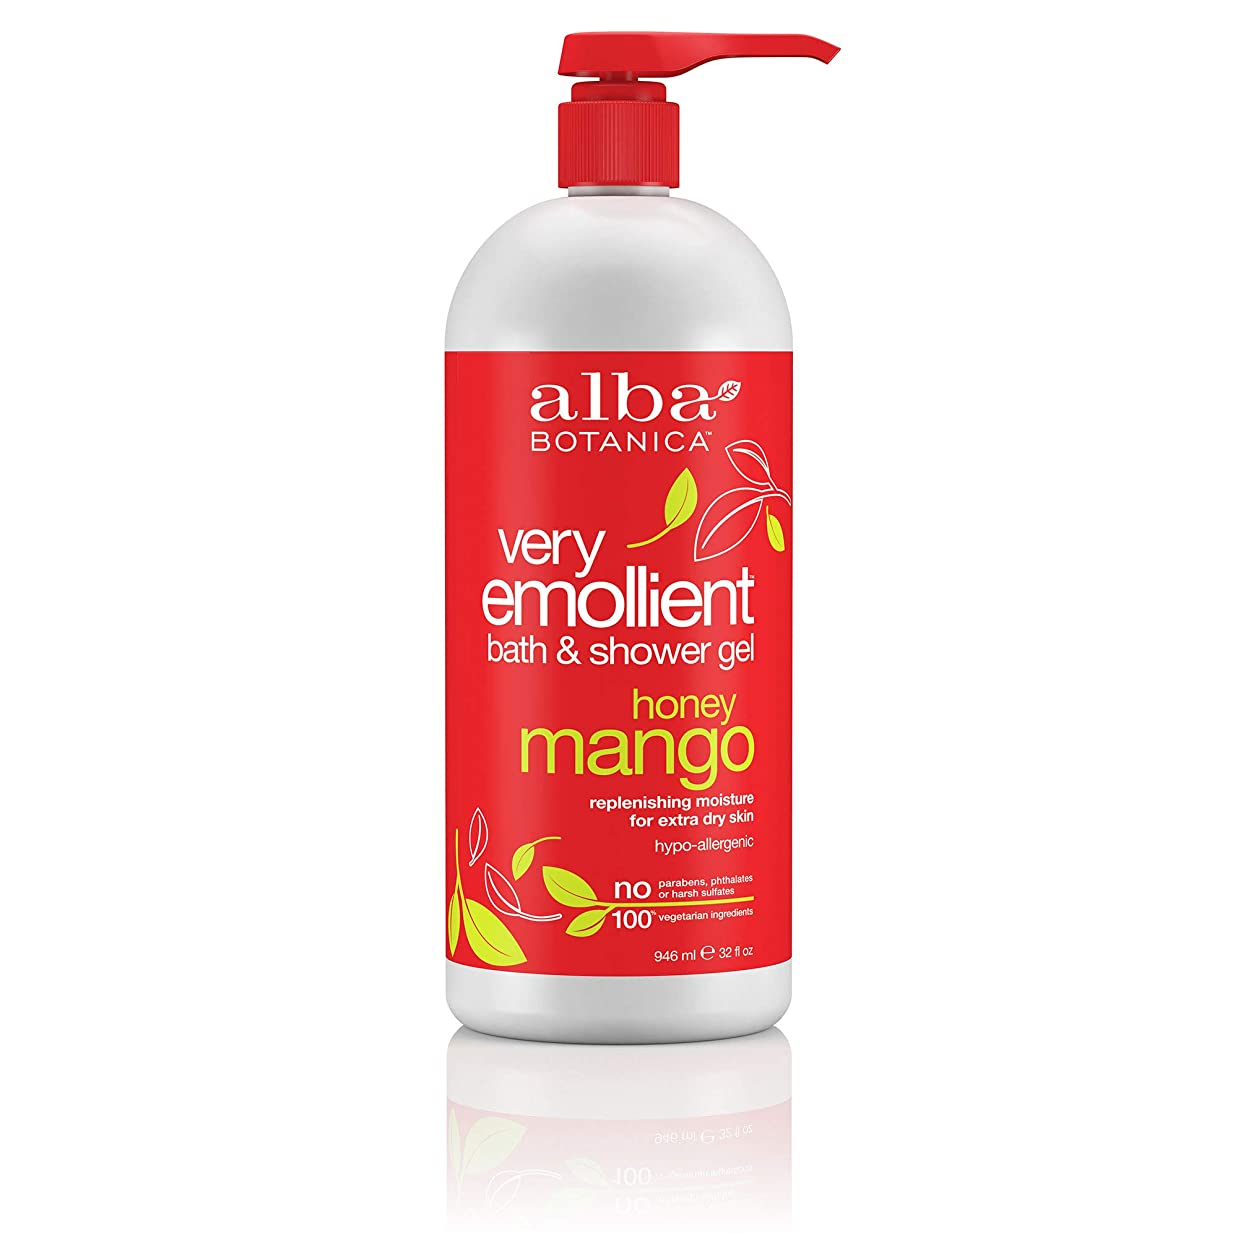 Alba Botanica, Natural Very Emollient Bath & Shower Gel, Honey Mango, 32 fl oz (946 ml)